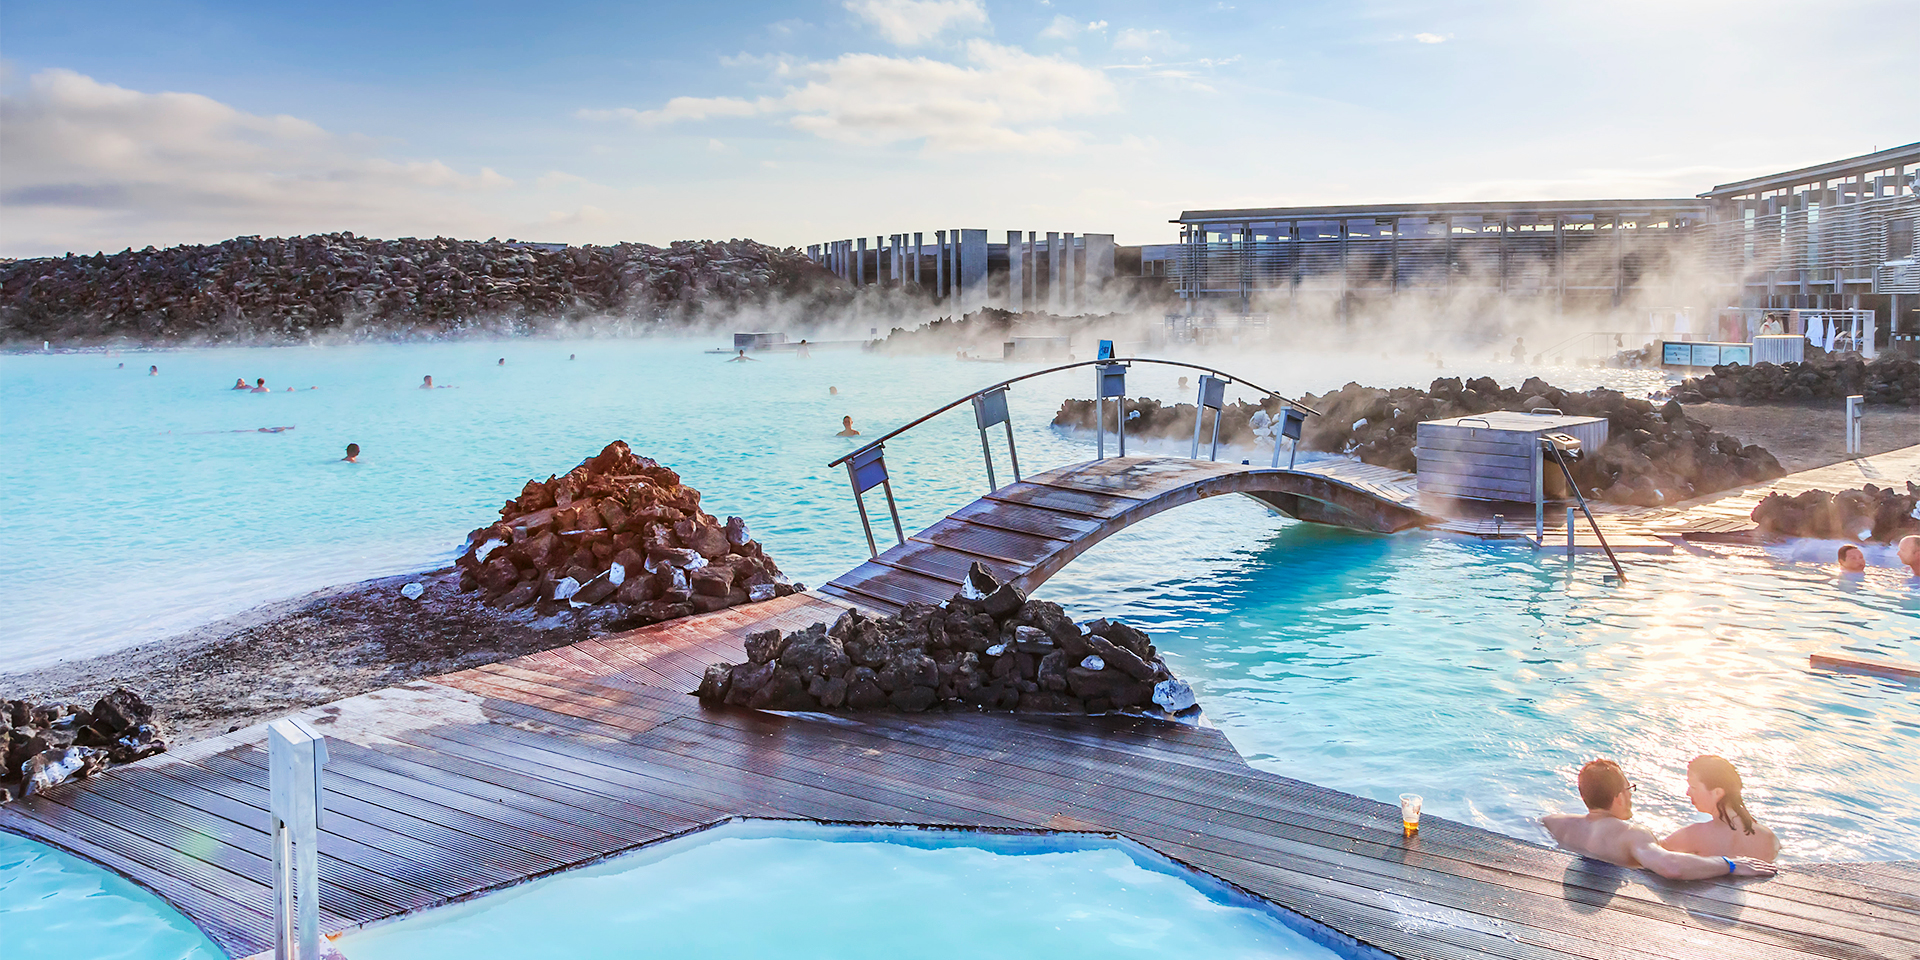 at-up-to-40-celsius-the-blue-lagoon-is-a-wonderful-spa-to-unwind-in-2